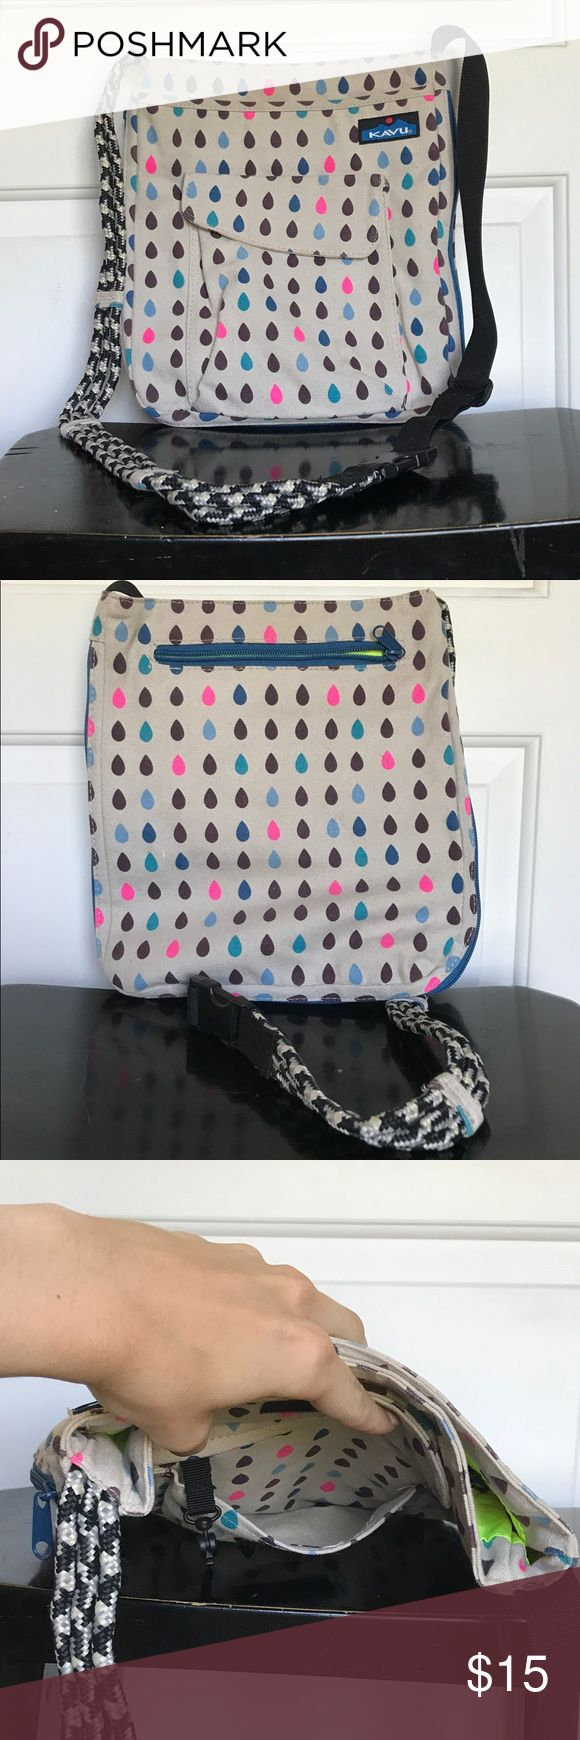 Kavu Crossbody Bag, Grey, Blue, Pink, Black This Crossbody bag features an open exterior pocket with a flap closure with a hook inside, a zipper exterior pocket on the back, and a zipper interior pocket. It's in excellent condition despite the pen ink stain in the bottom, which is invisible when worn. KAVU Bags Crossbody Bags